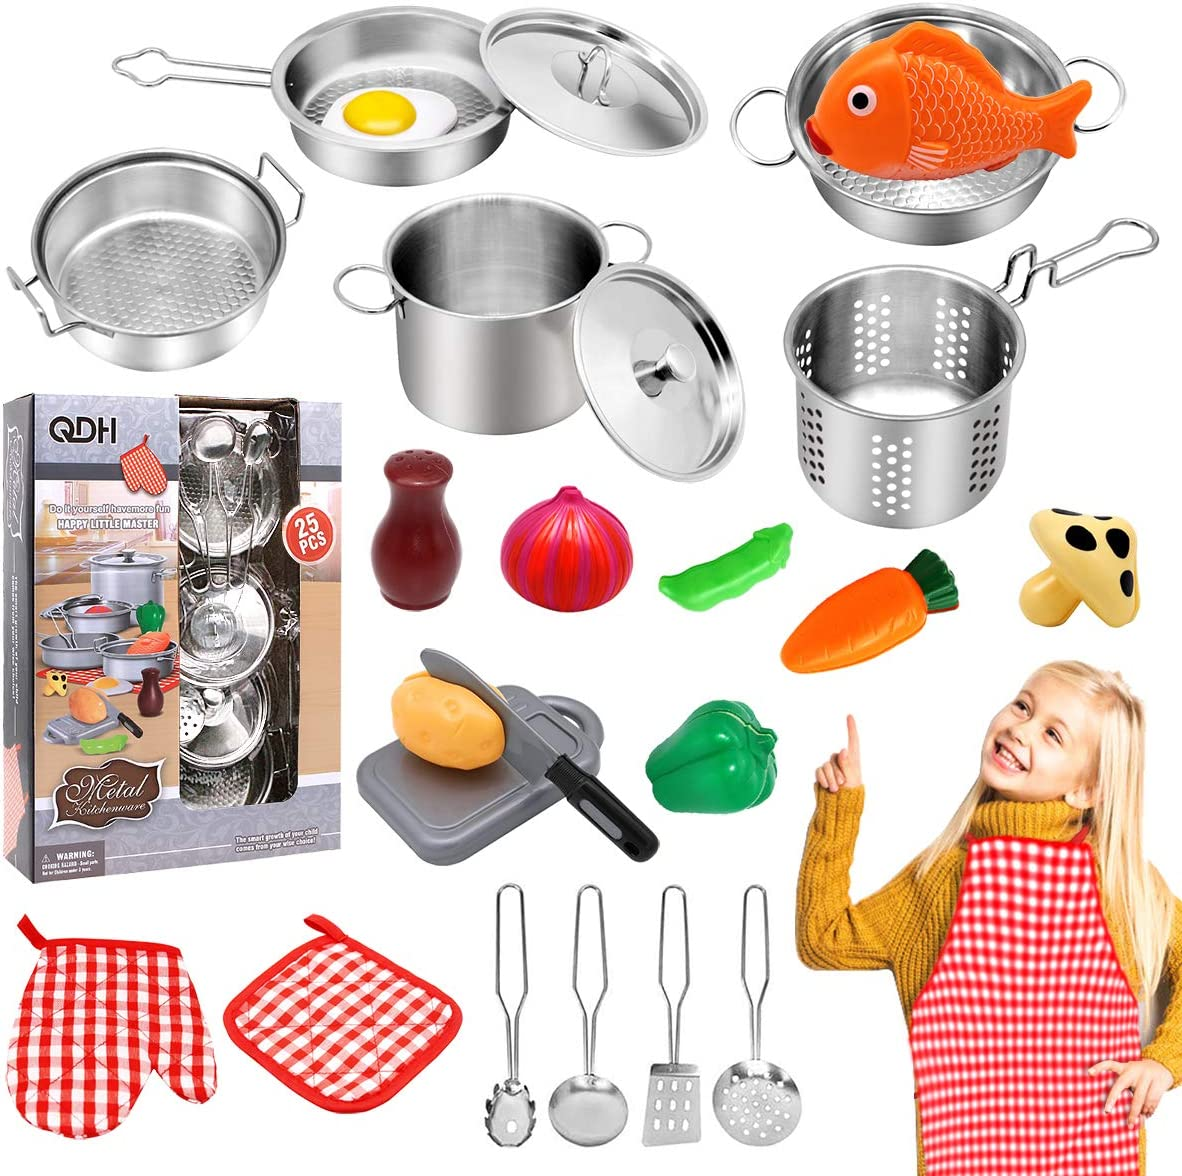 QDH Kids Kitchen Pretend Play Toys Stainless Steel Cookware Pots and Pans Set Play Food Set Accessories Cooking Utensils Set Apron Cutting Vegetables Play Kitchen Toys for Girls Boys Toddlers